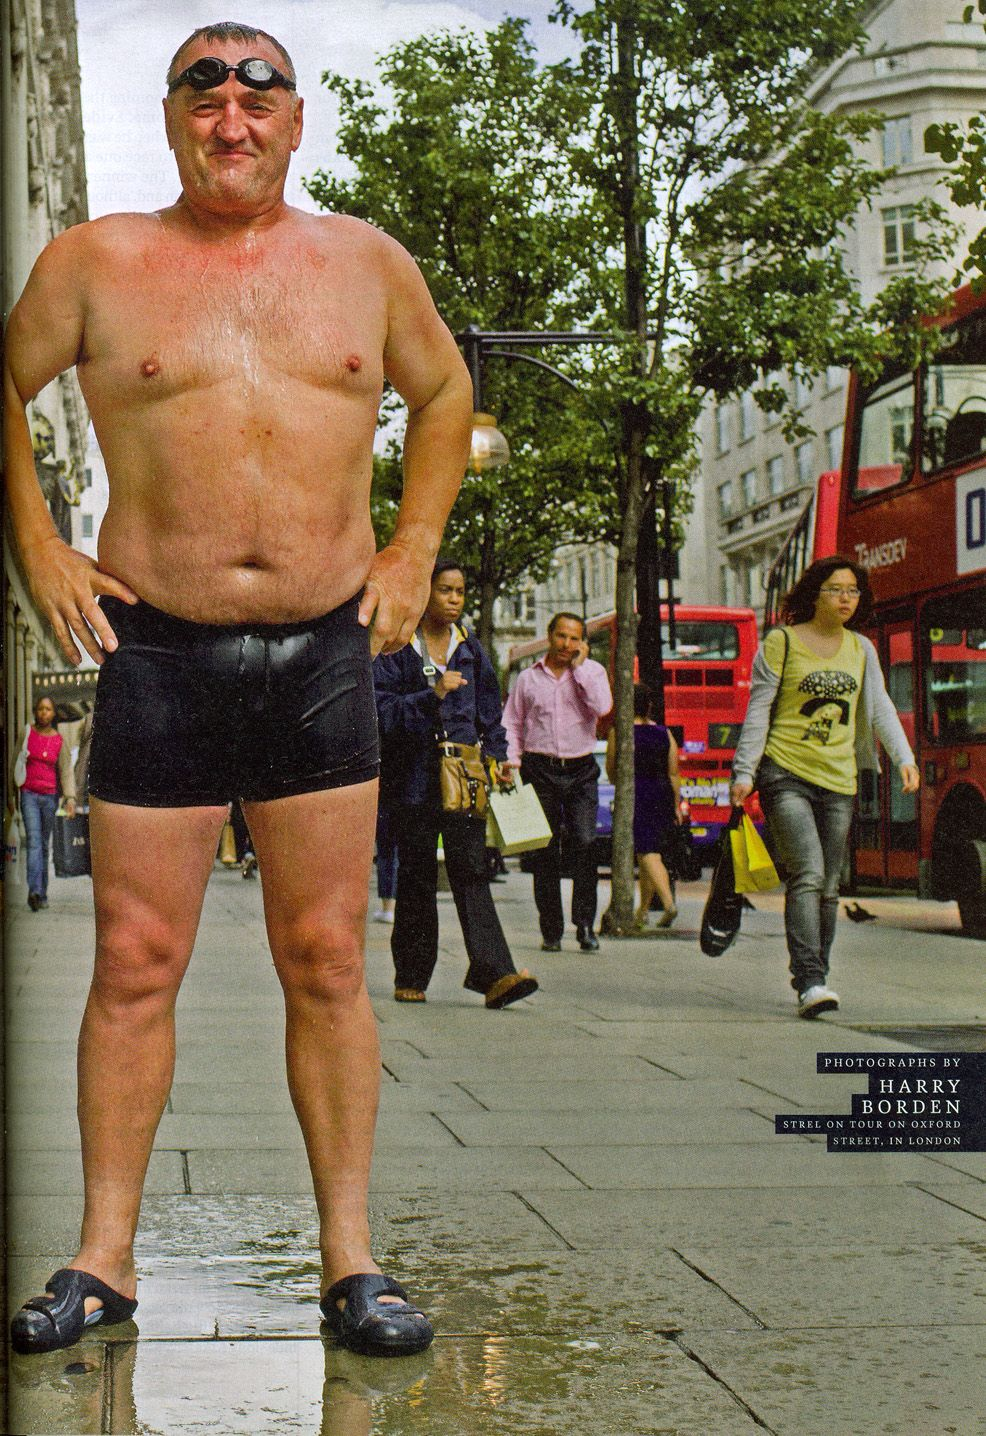 Our Marathon Swimming Legend Martin Strel Is Just Getting Ready To Swim At Oxford Street London